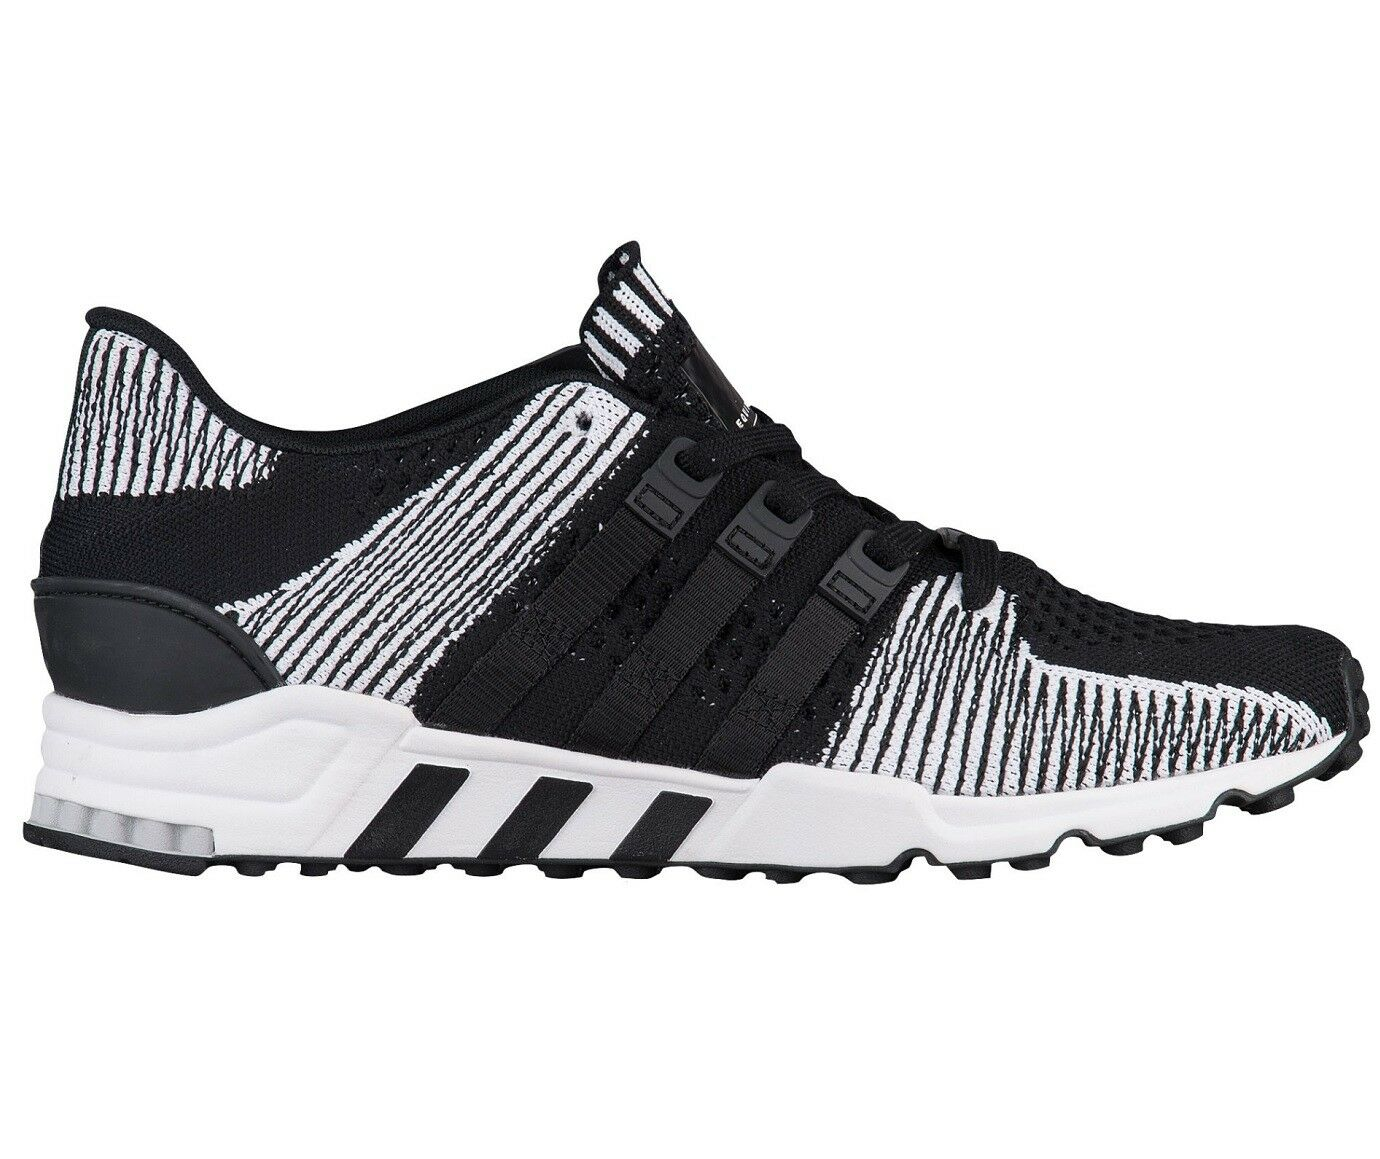 Adidas EQT Support RF Primeknit Mens BY9689 Black White Running Shoes Size 12